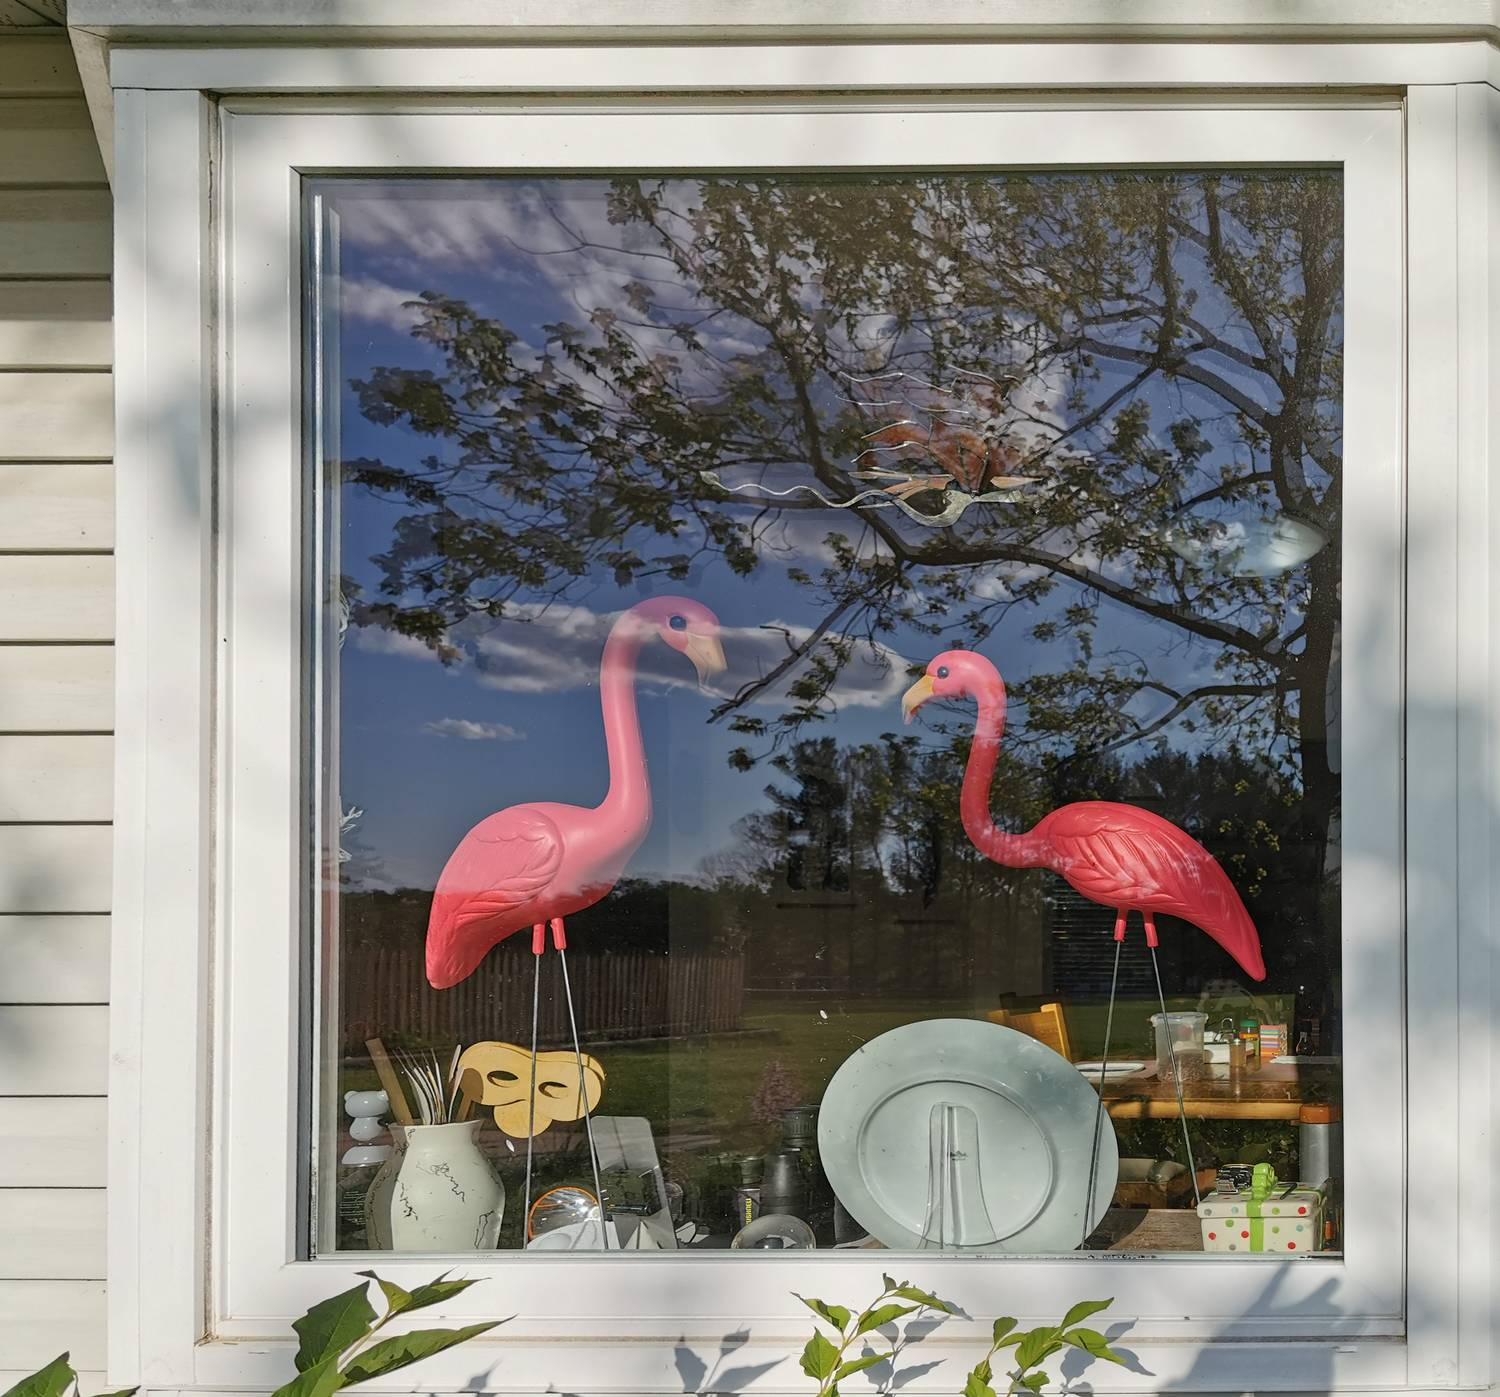 - My fix for bird strikes on my window - Bird strikes, flamingos, preventing bird strikes, pink - Tony Karp, design, art, photography, techno-impressionist, techno-impressionism, aerial photography , drone , drones , dji , mavic pro , video , 3D printing - Books -